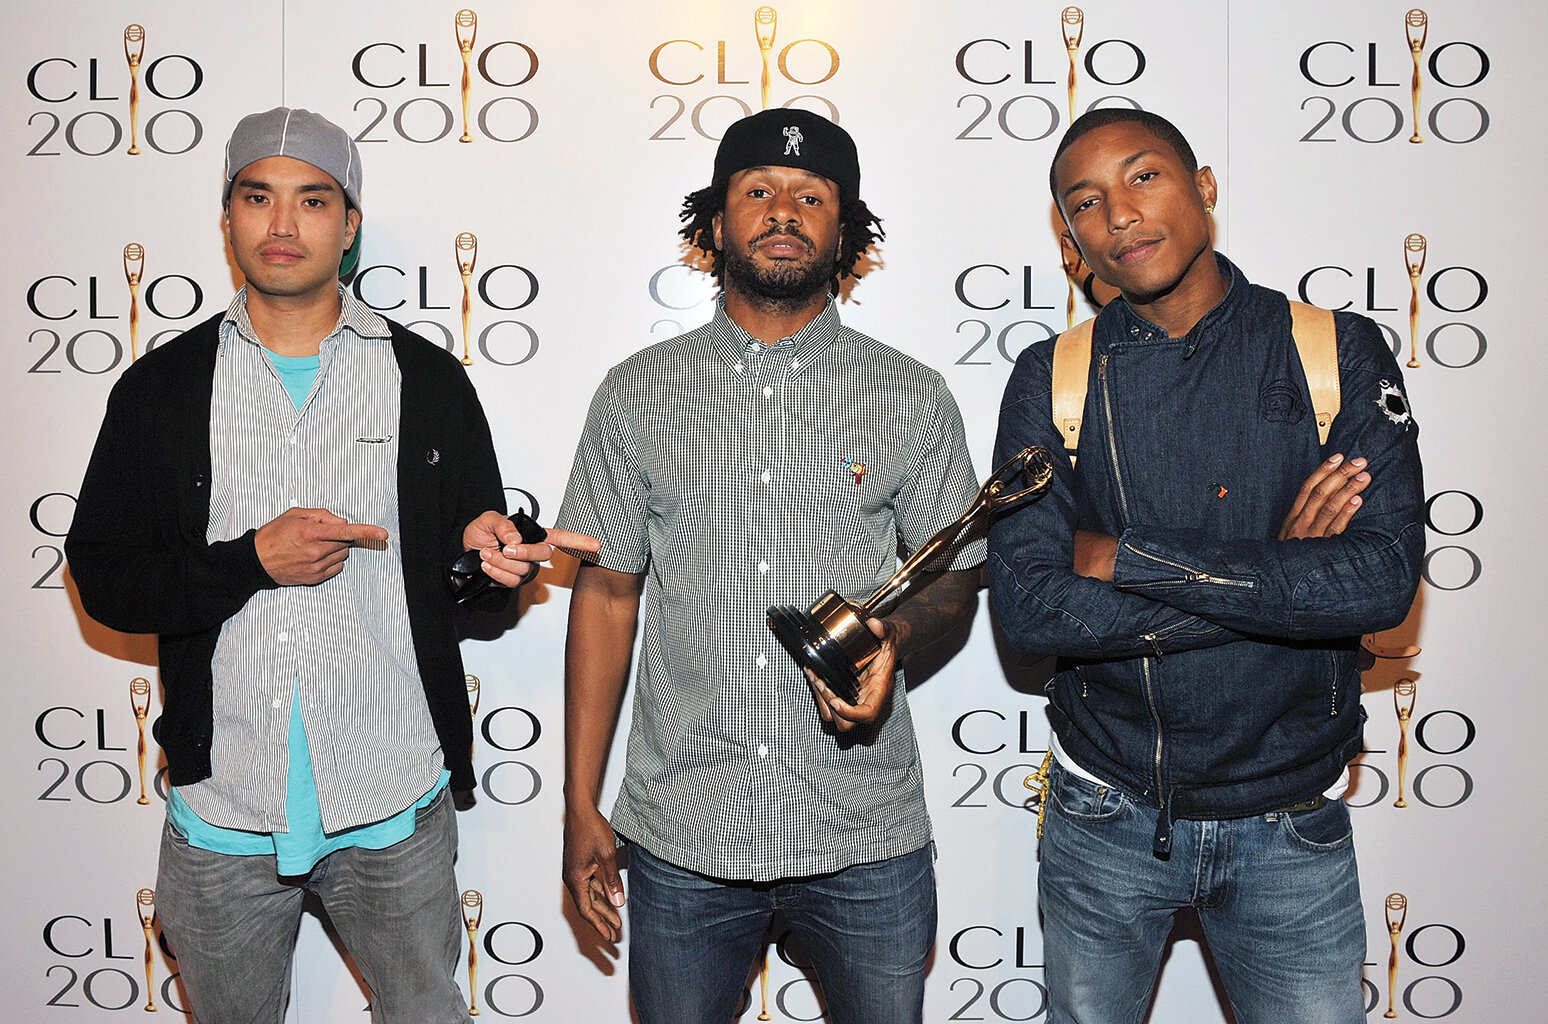 N*E*R*D's Chad Hugo, Shay Haley and Pharrell Williams (from left) at the 2010 Clios.